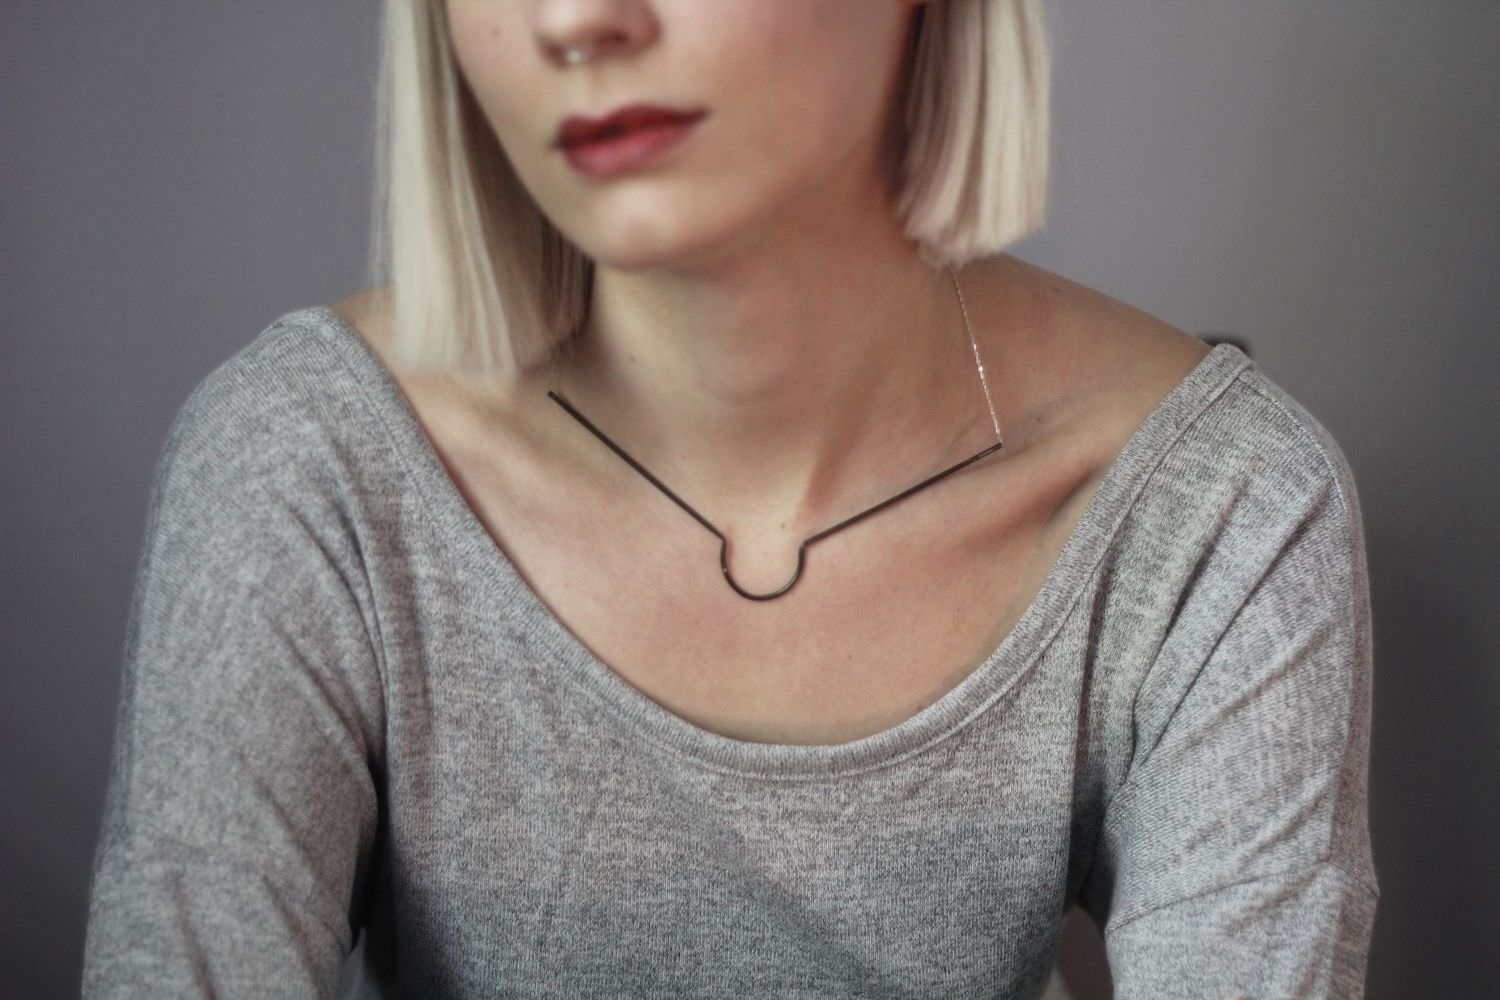 H Works jewelry - photo of necklace on woman